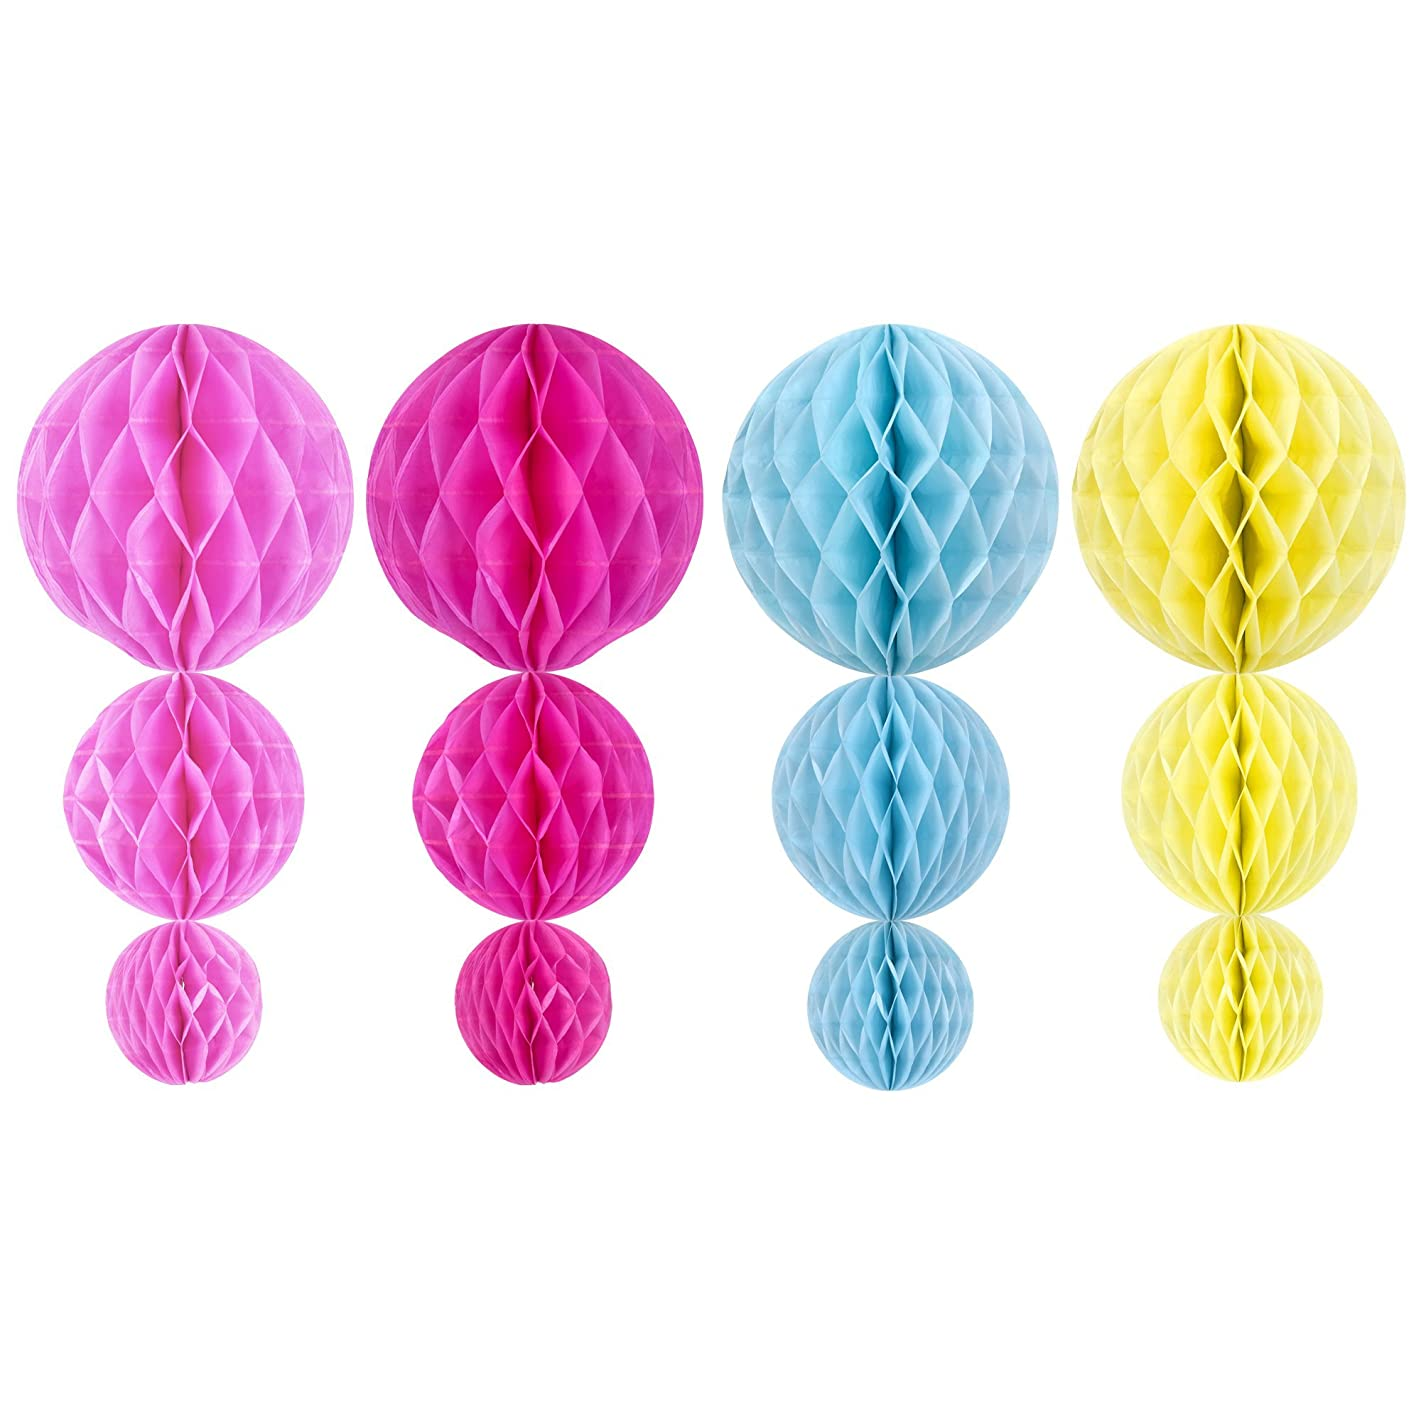 Beautyflier ? 4'', 6'' and 8'' 4Color Assorted Decorative Tissue Paper Honeycomb Balls, Tissue Paper Flower Ball Bee Pom Poms for Birthday Decoration, Wedding Decor, Party Decor